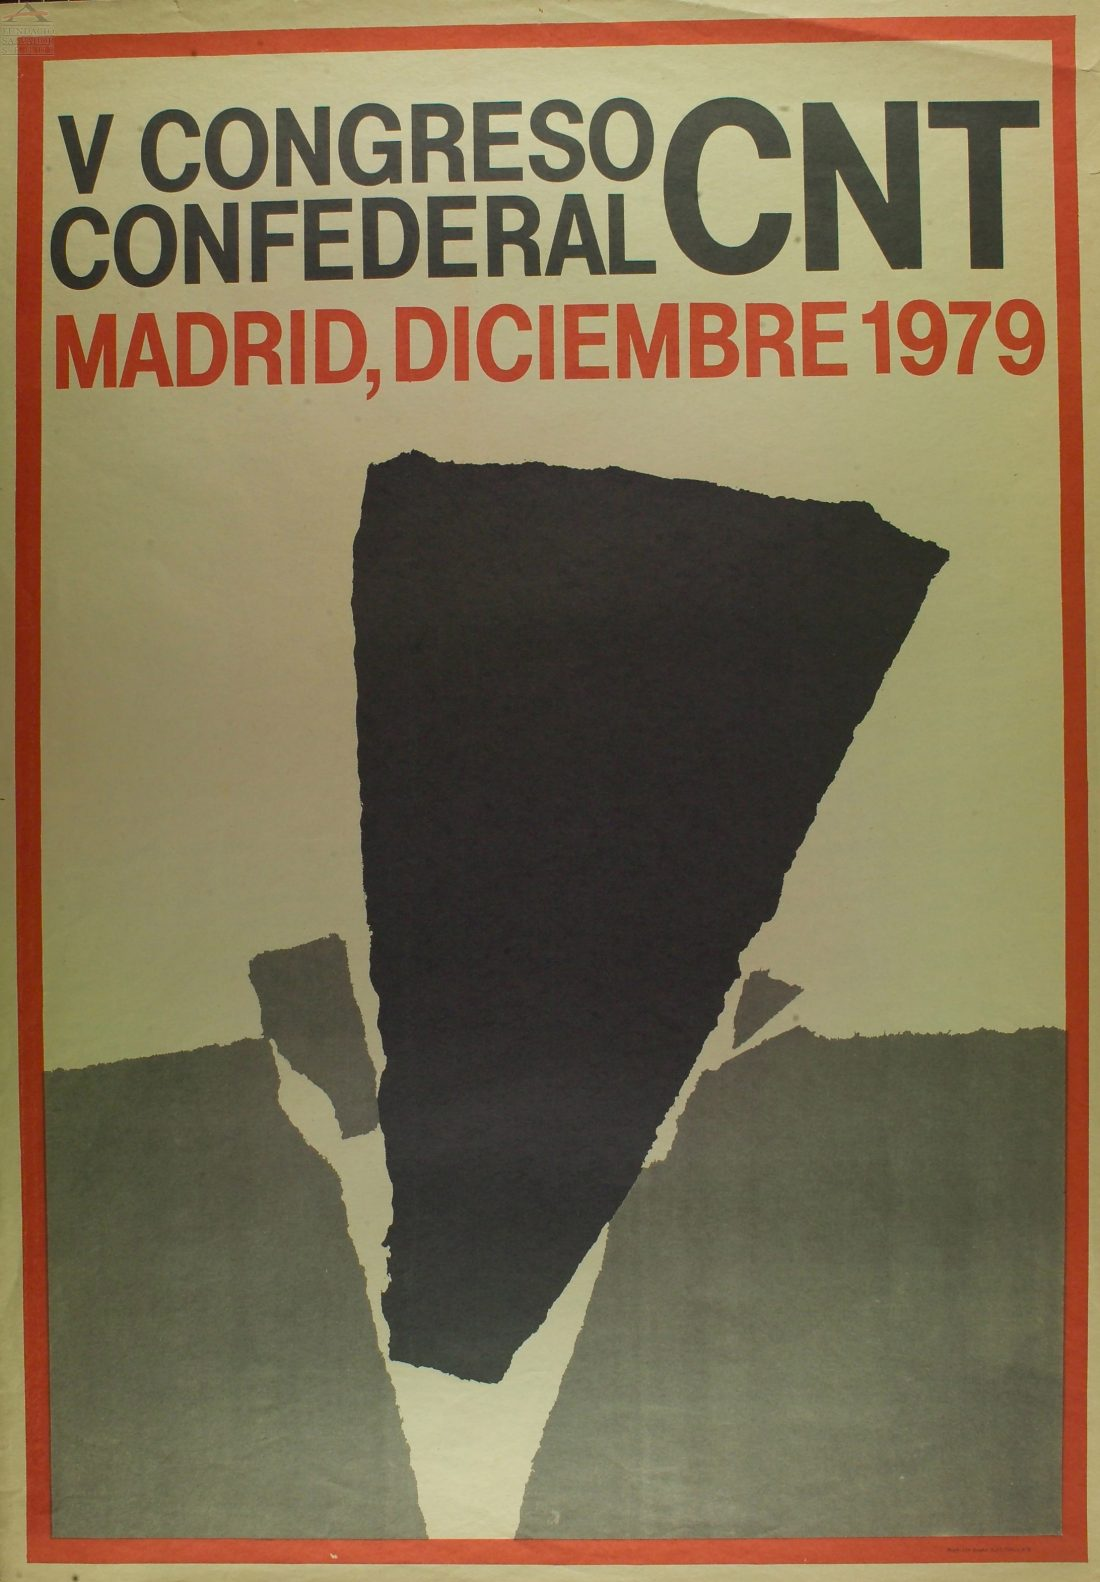 Cartel V Congreso Confederal (Madrid 1979)